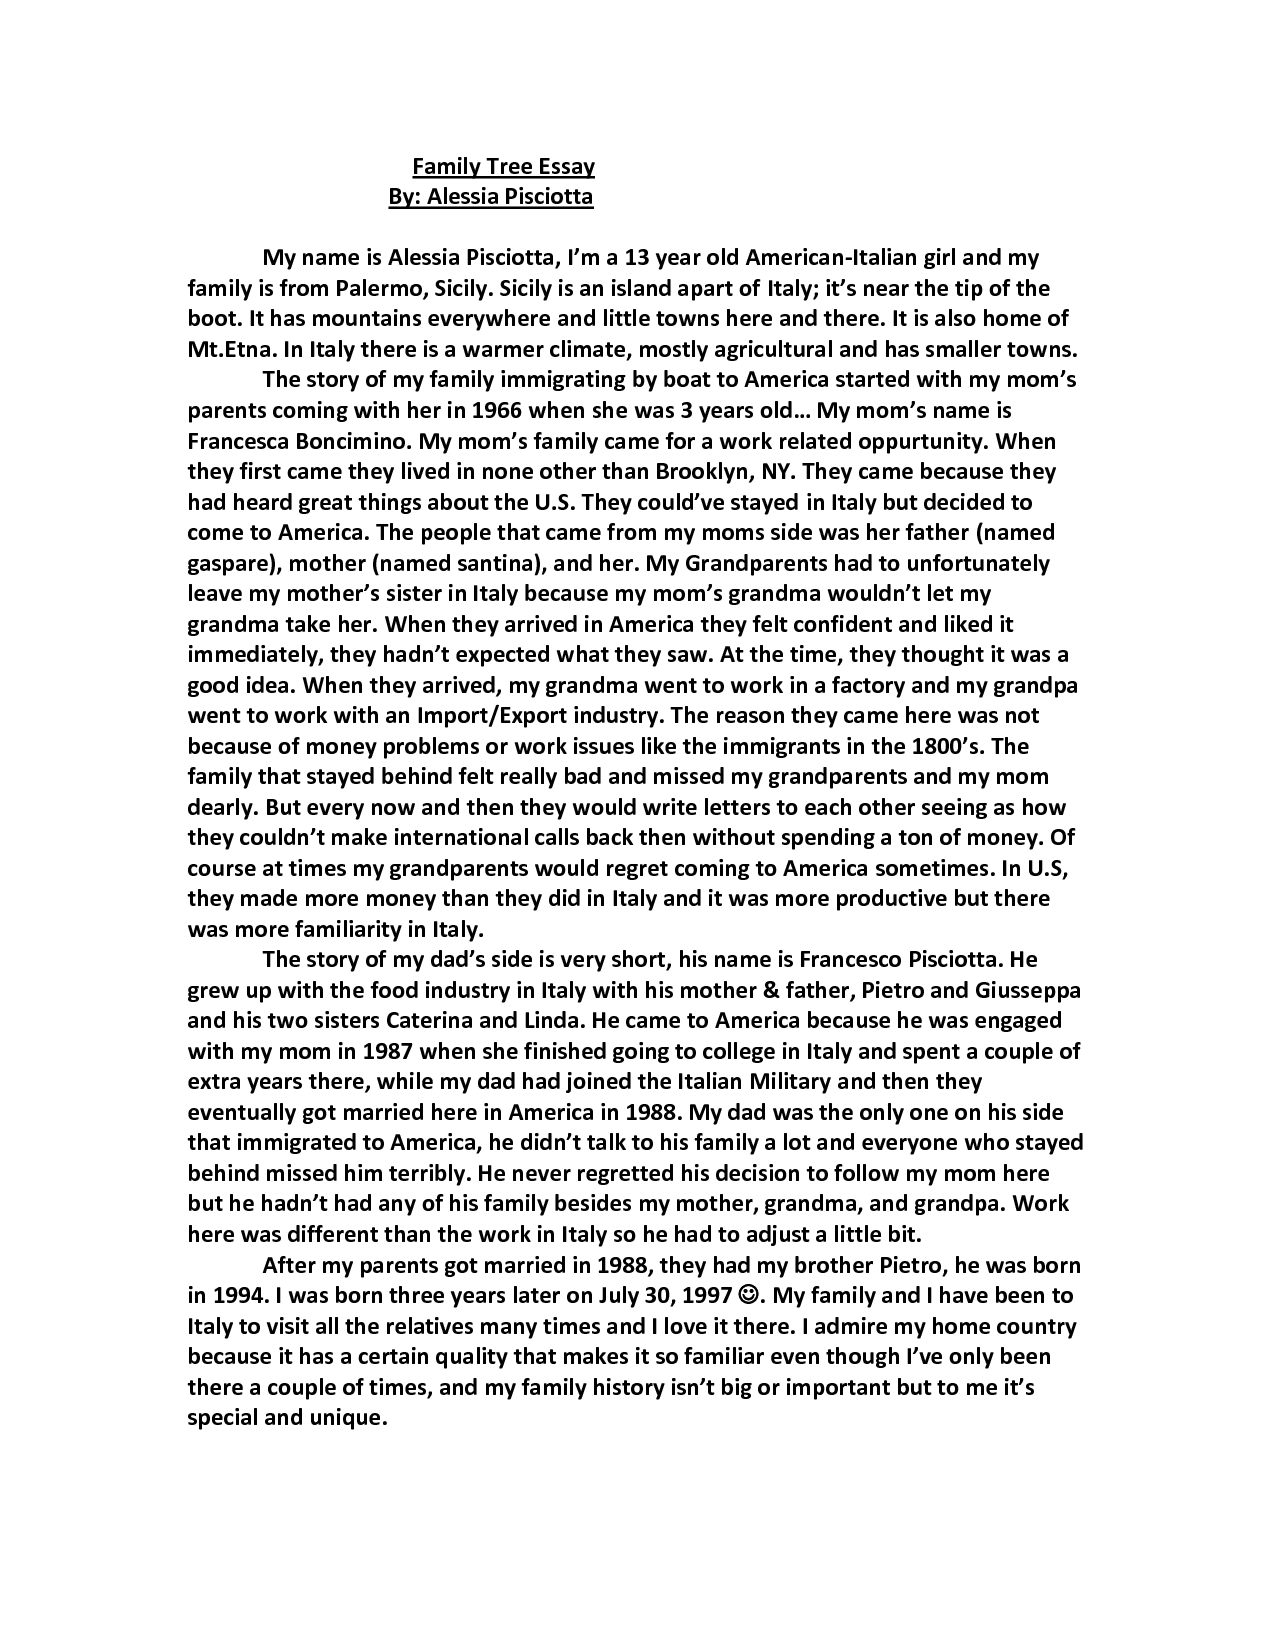 004 Family History Essay Example Marvelous Outline Examples Conclusion Full